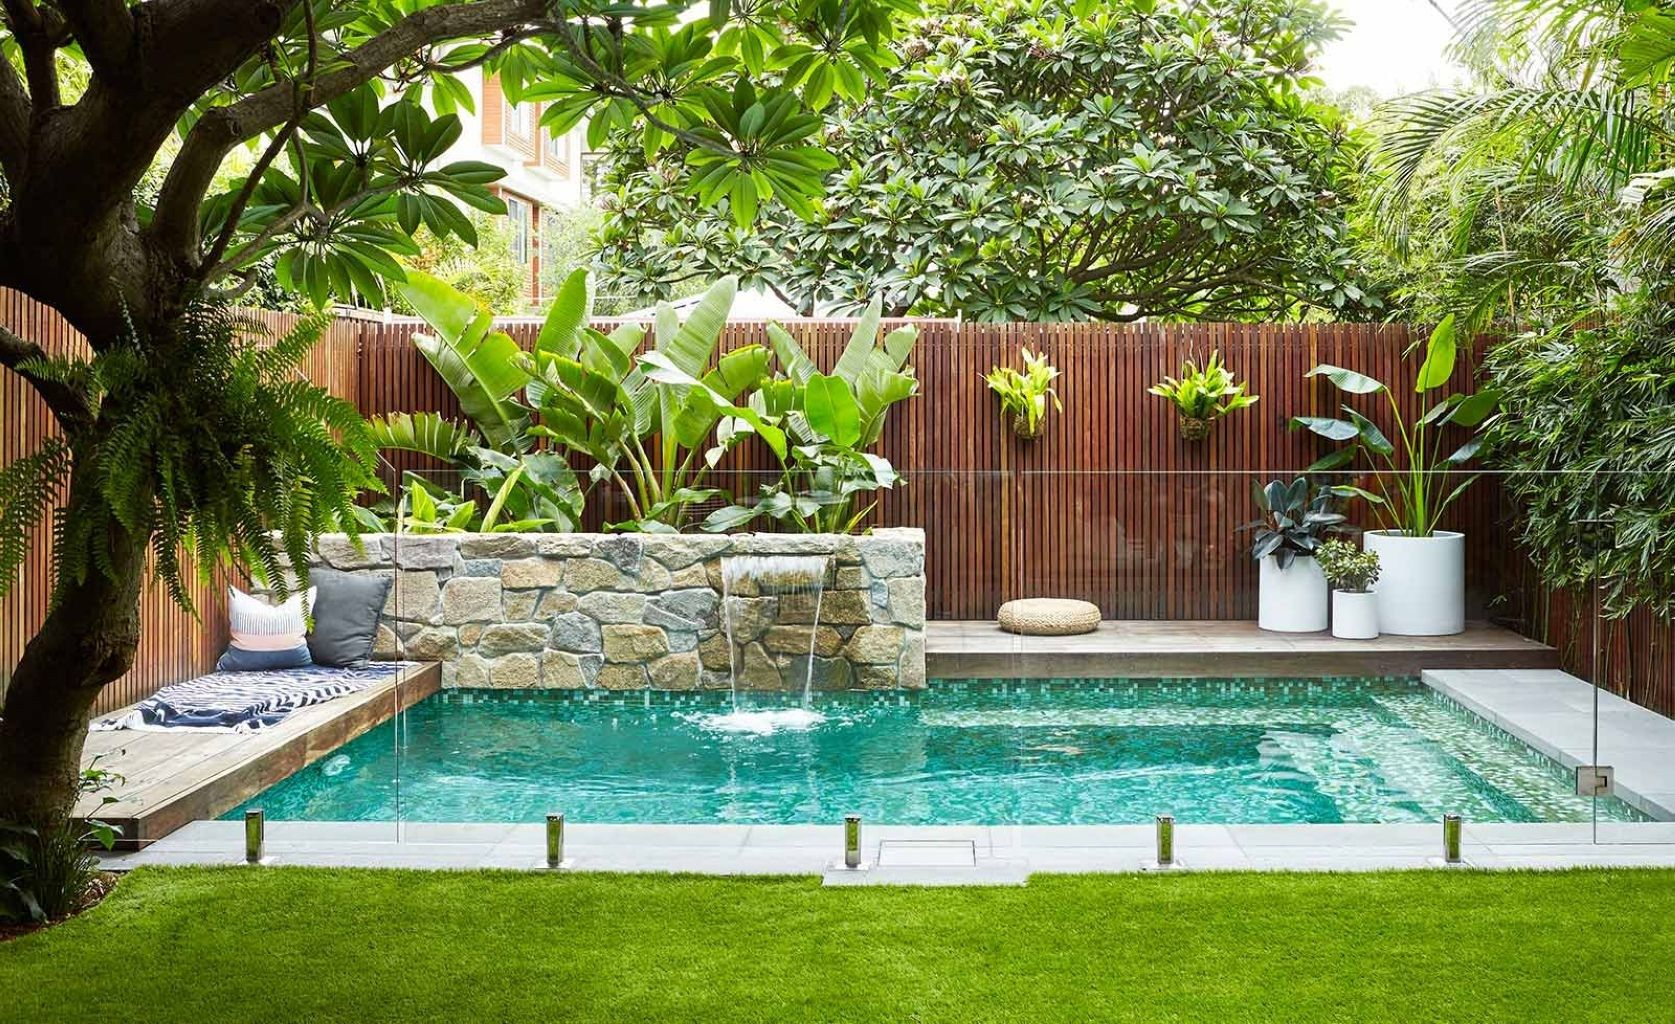 Best Small Pool Ideas For A Small Backyard 35 Toparchitecture Small Backyard Pools Small Pool Design Backyard